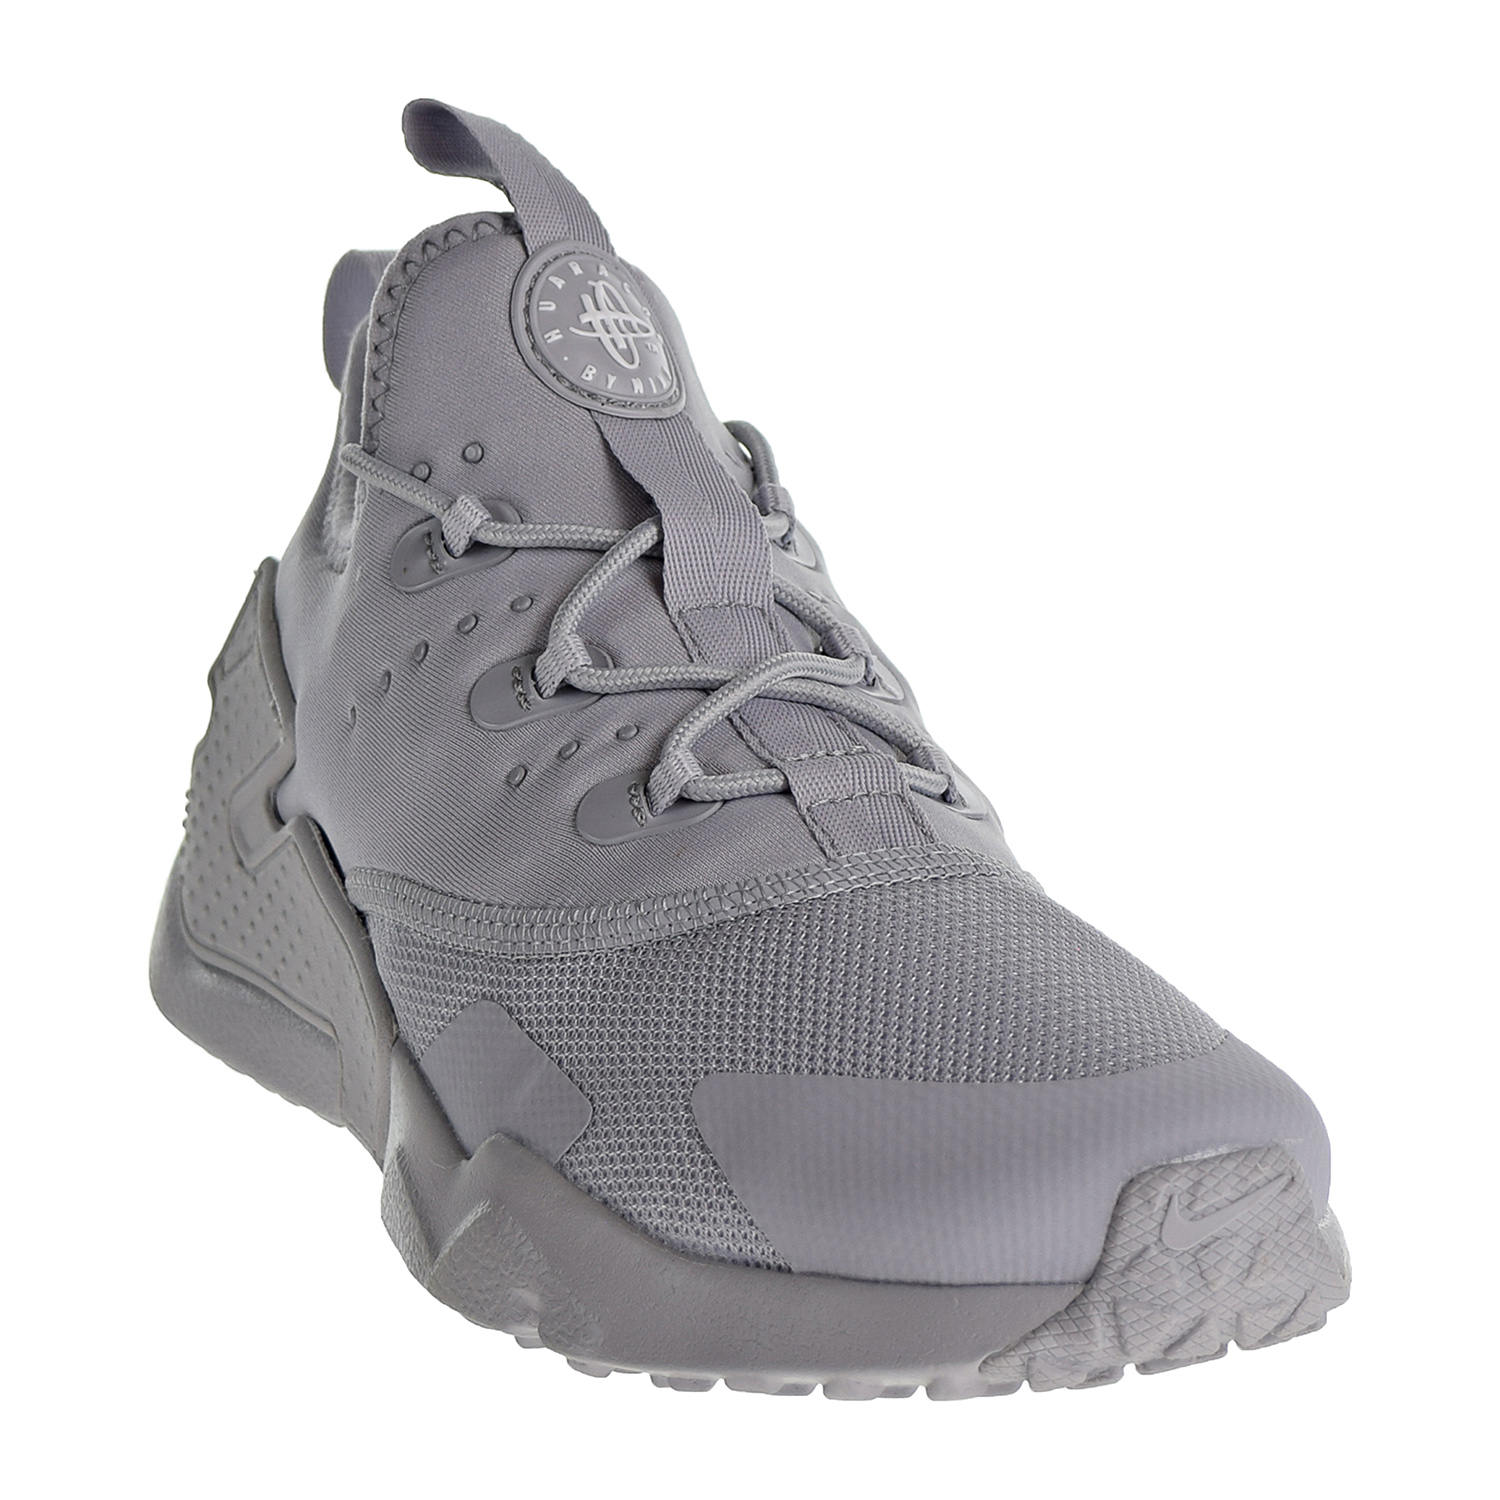 429b774081af Nike - Nike Huarache Run Drift Little Kids  Shoes Wolf Grey White aa3503-003  - Walmart.com